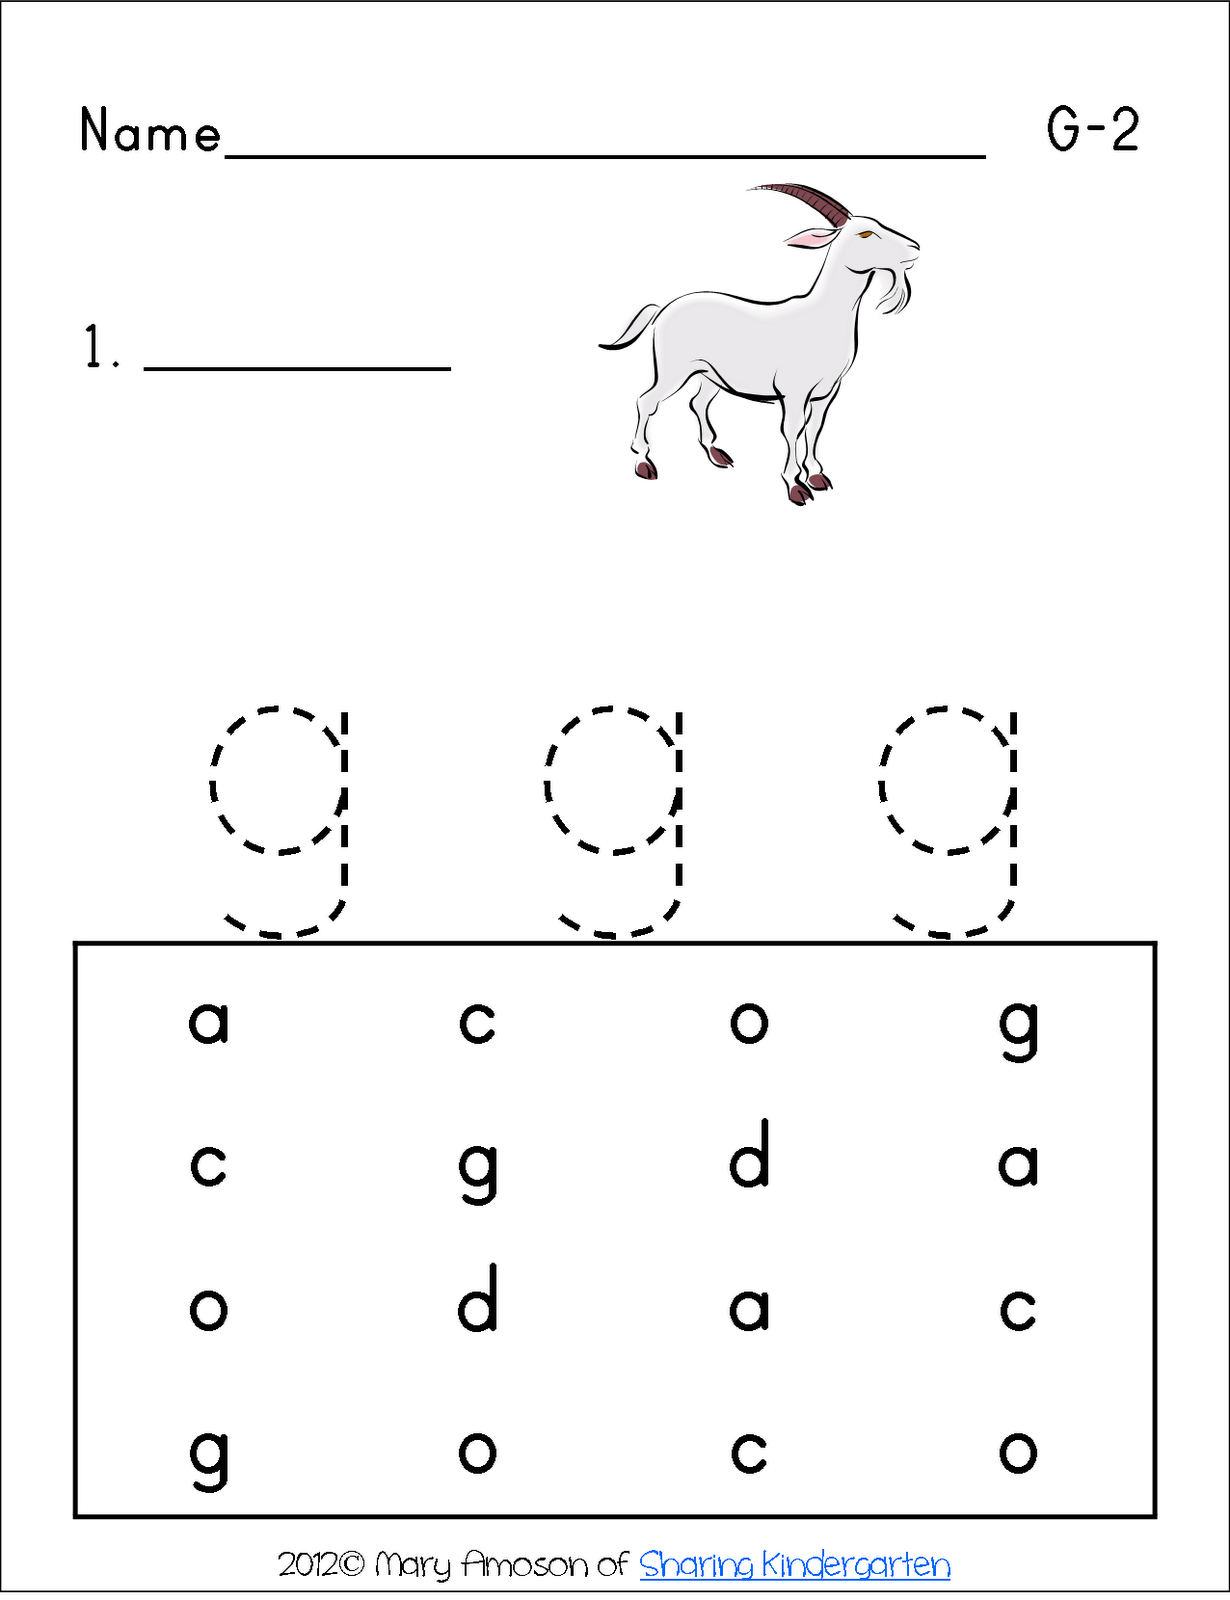 17 Best Images Of Saxon Phonics Worksheets